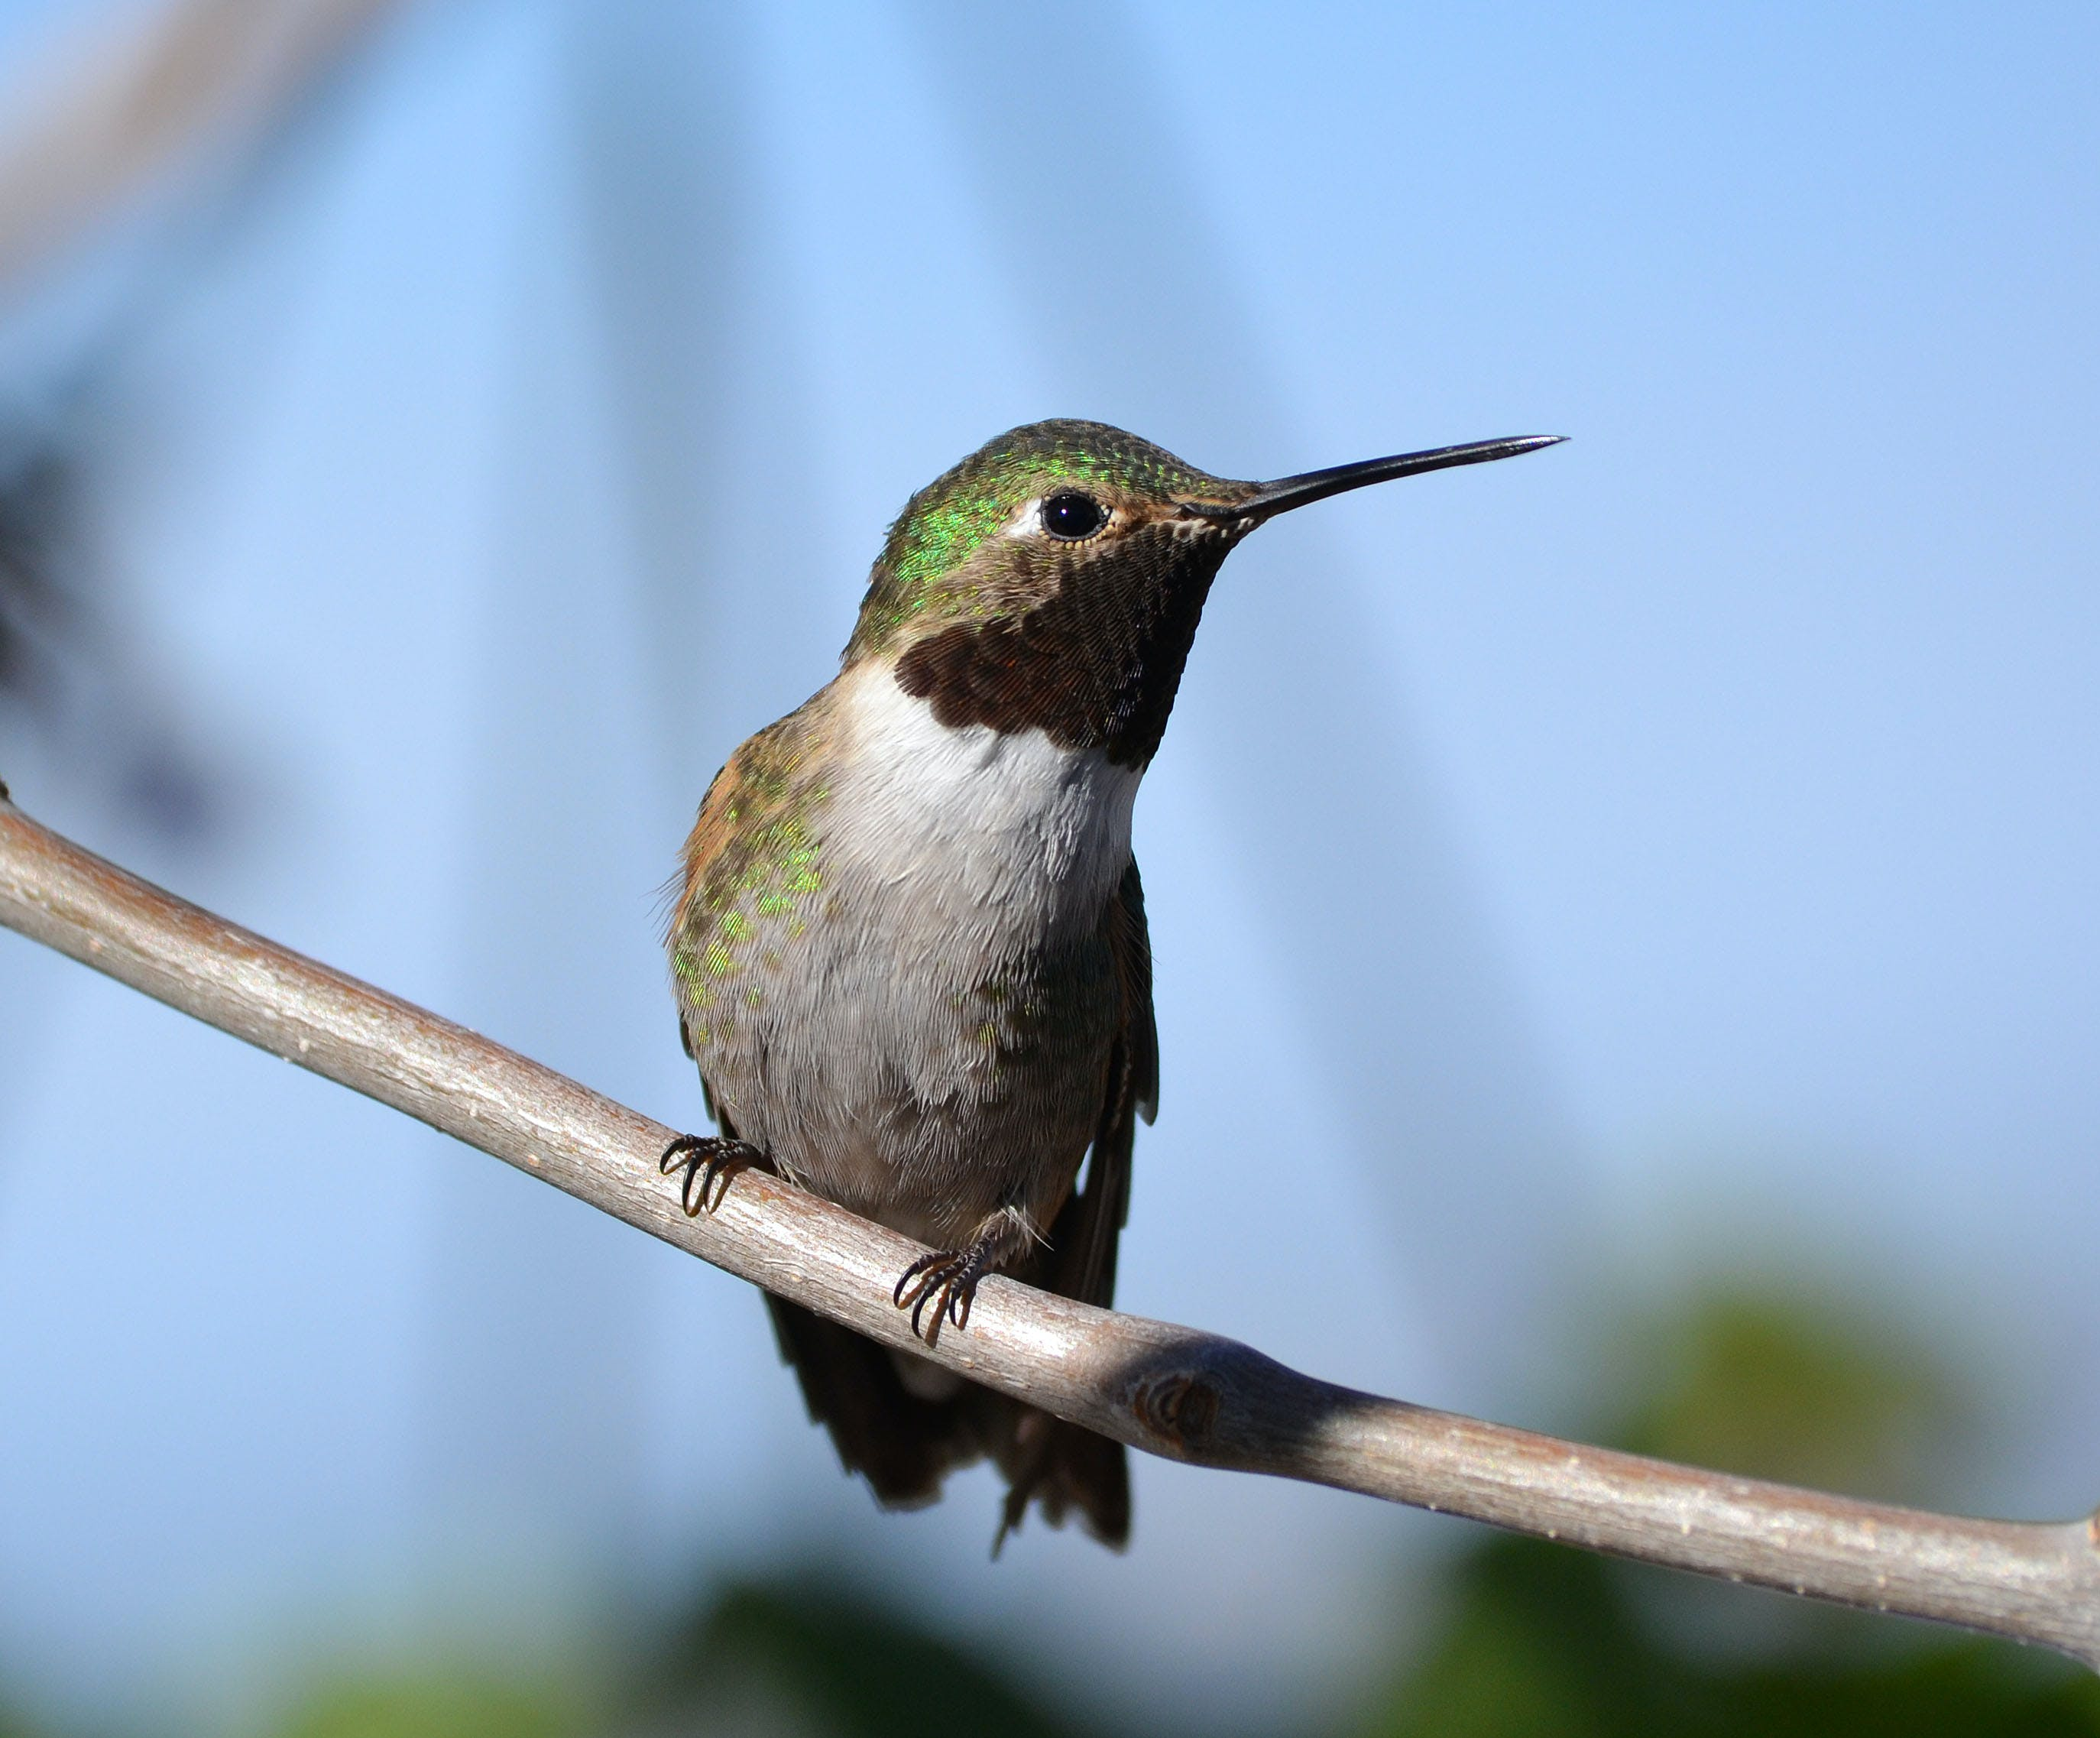 Shallow Focus Photography of Gray and Green Bird on Branch